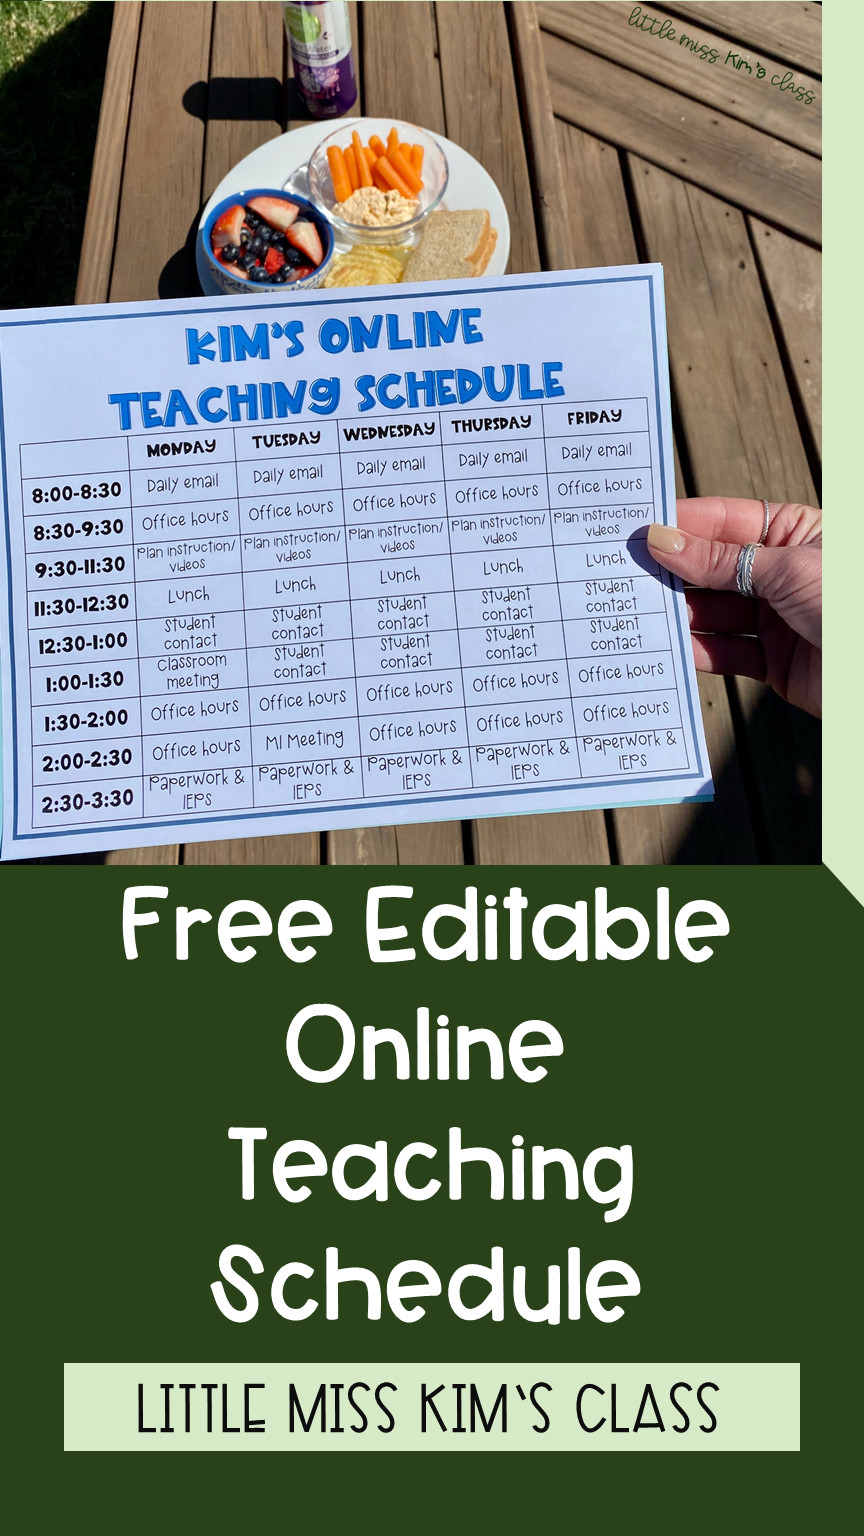 Free materials & resources for special education and primary elementary teachers during remote / online learning! Teacher schedule template